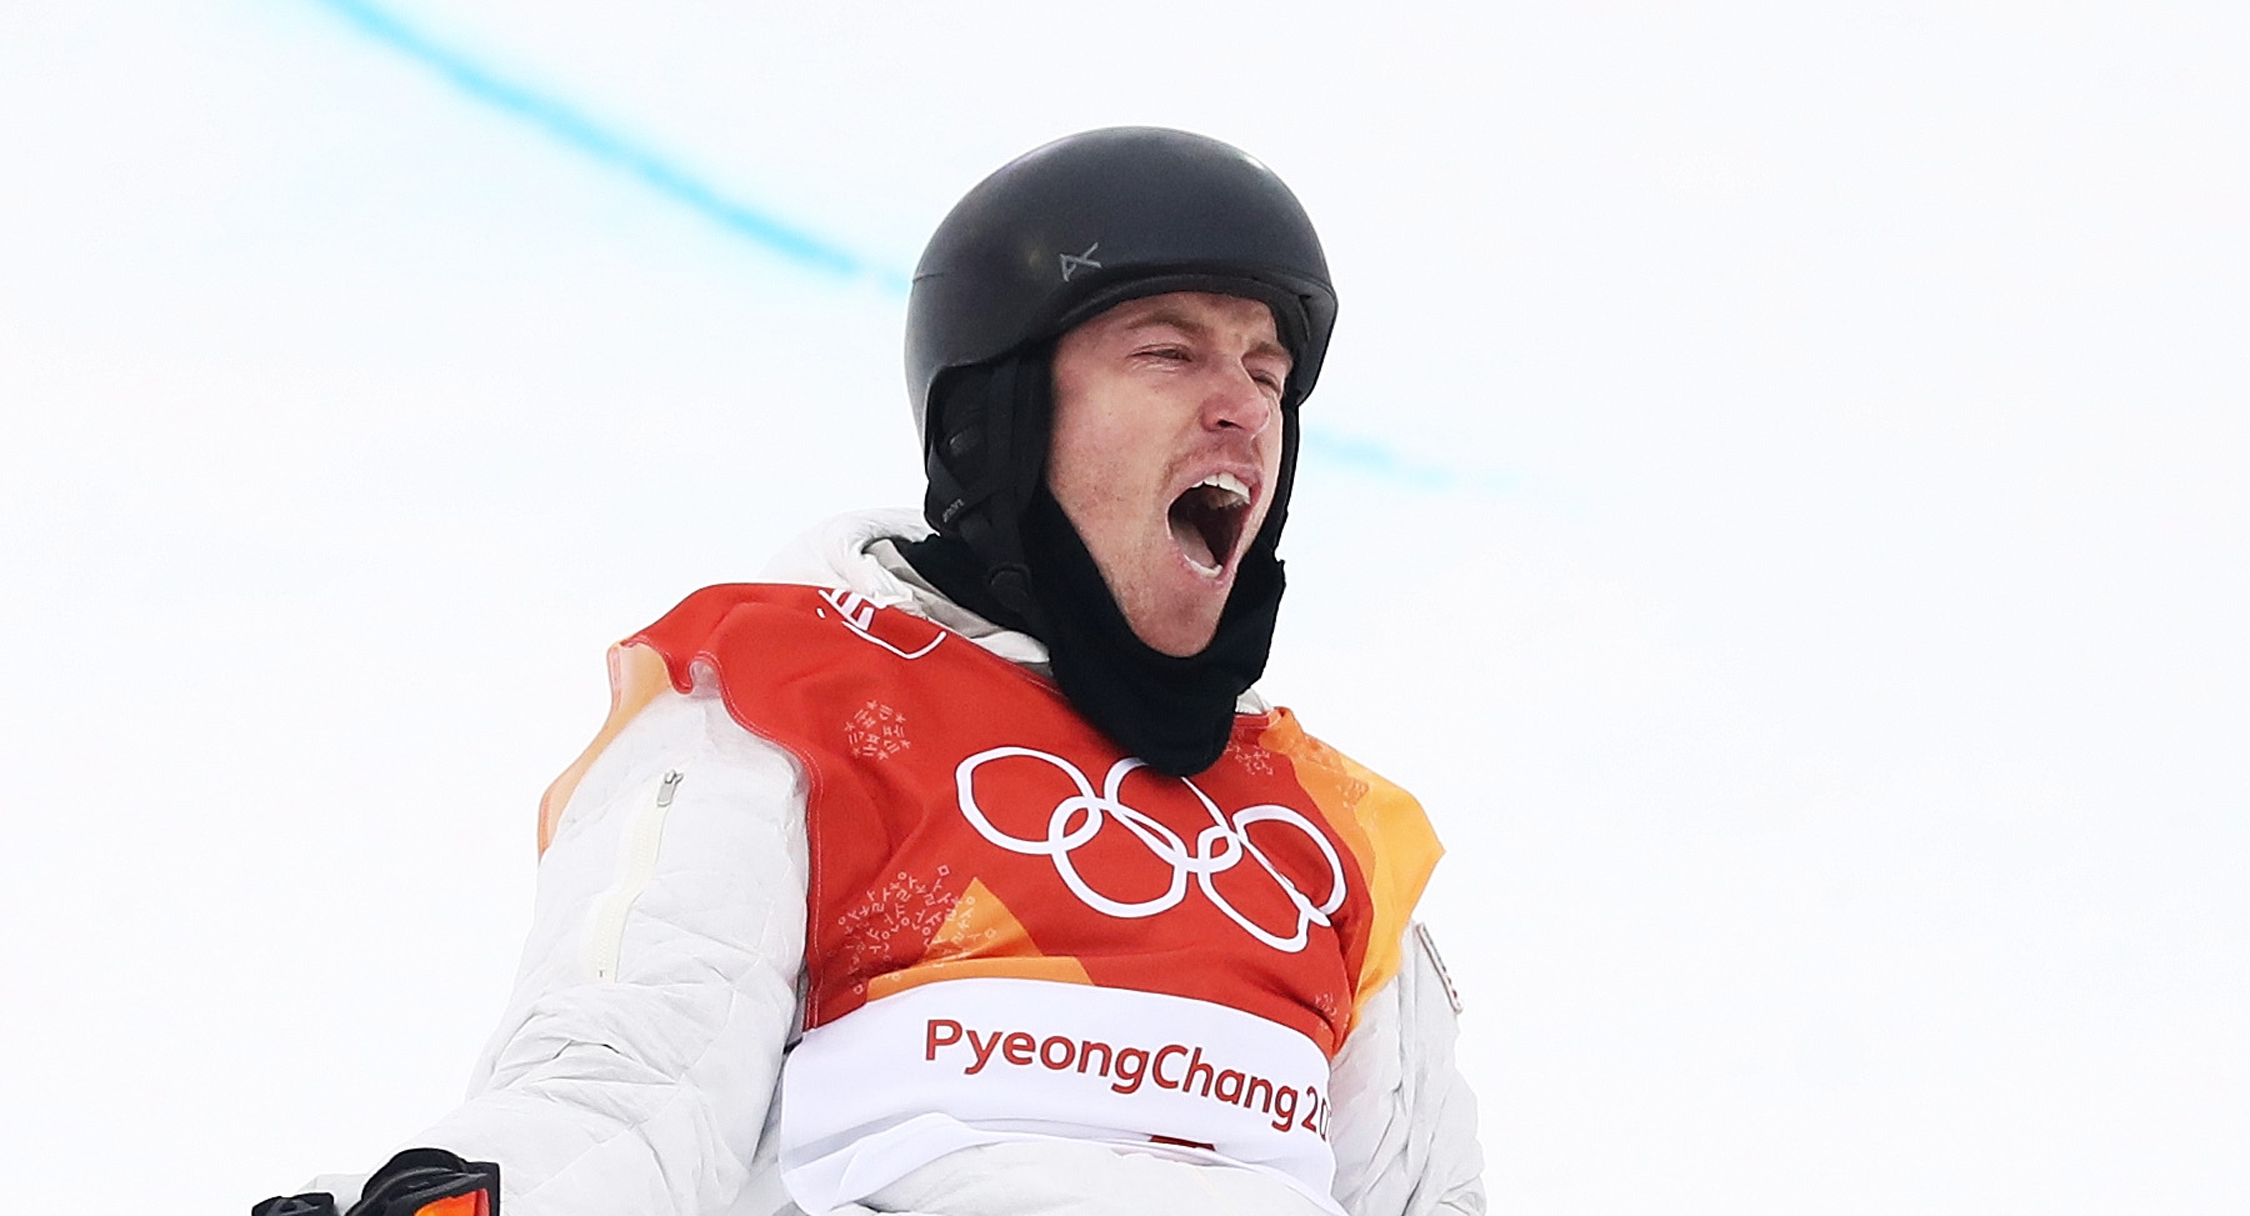 Shaun White celebrates after his third run at the halfpipe at Phoenix Snow Park. (Getty Images - Cameron Spencer)